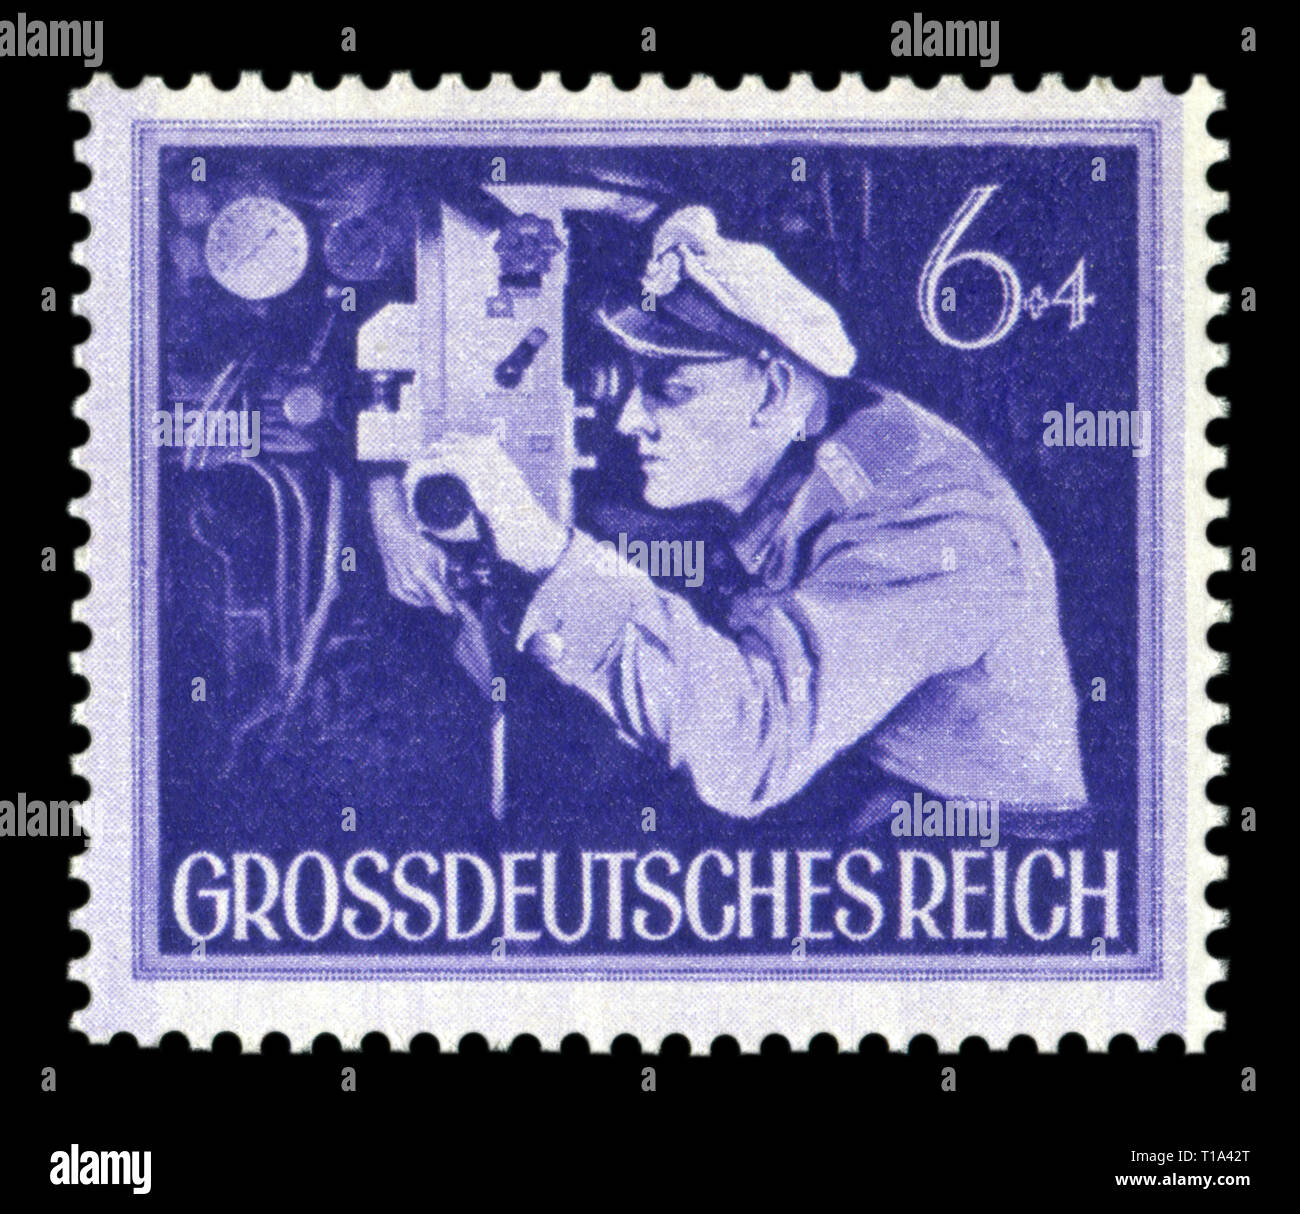 German historical stamp: The commander of the submarine at the periscope. The Army Of The third Reich. Day of commemoration of the fallen soldiers, 44 - Stock Image